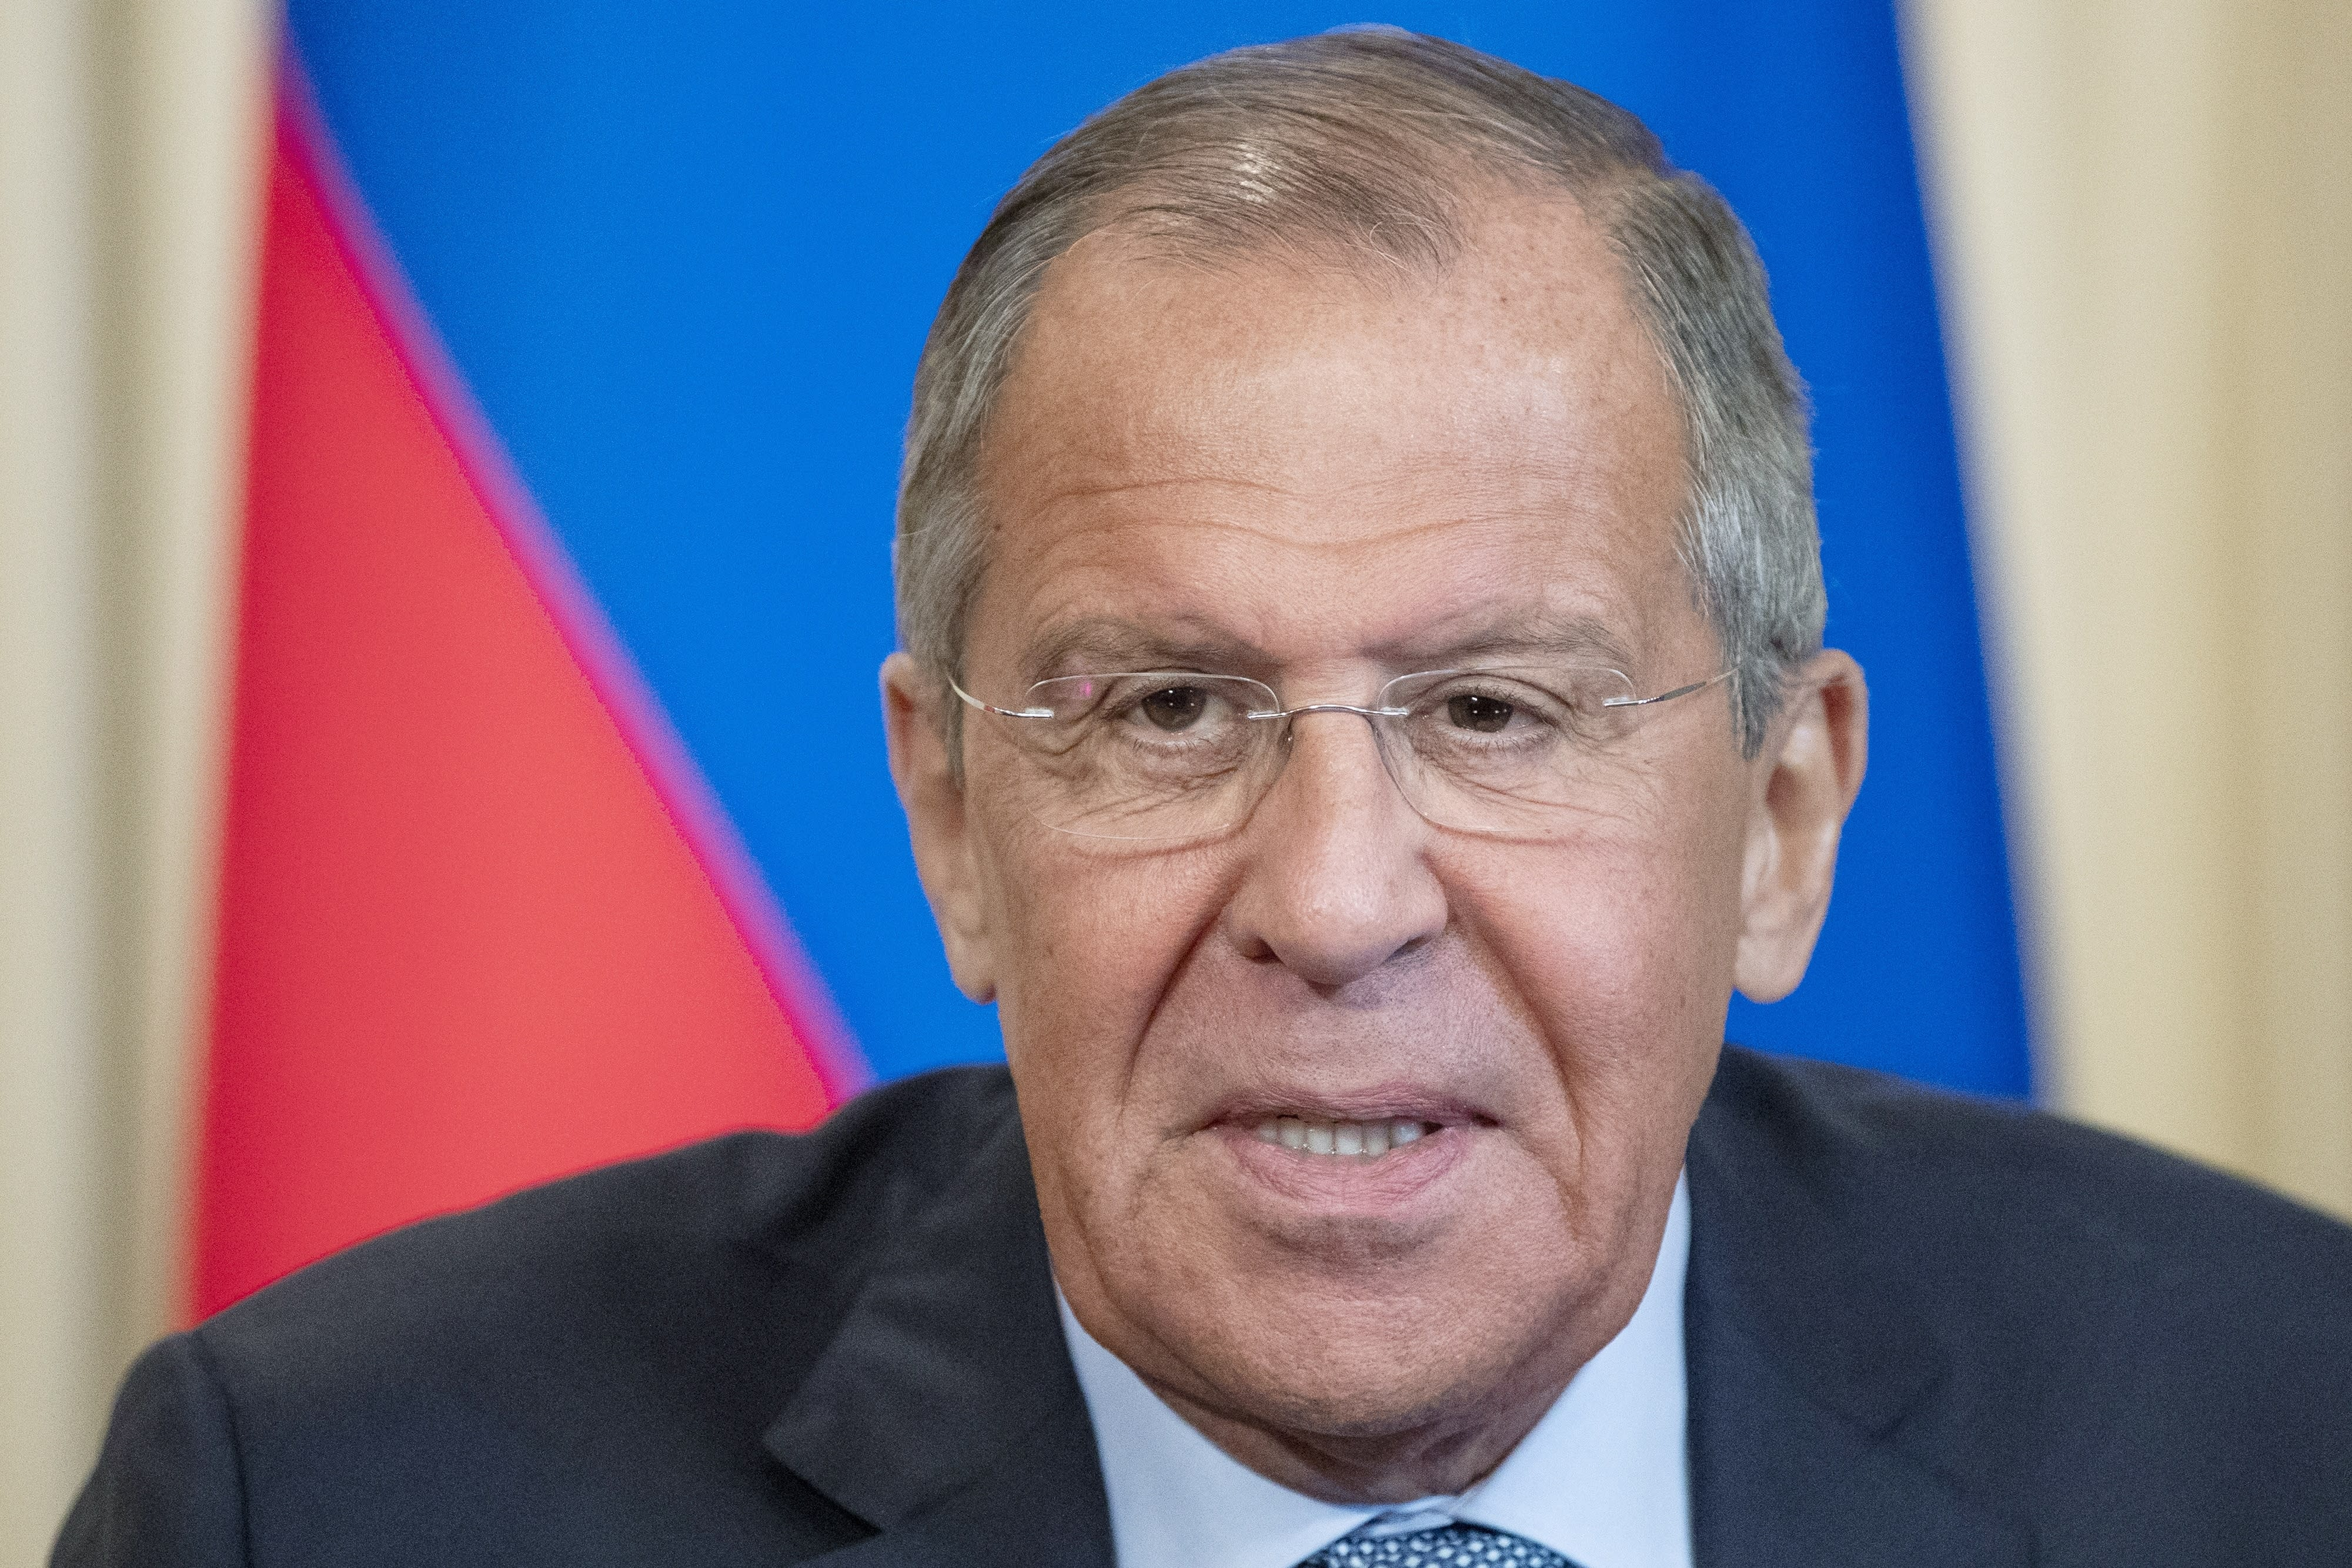 Russian Foreign Minister Sergey Lavrov smiles during his meeting with Turkish Foreign Minister Mevlut Cavusoglu in Moscow, Russia, Friday, Aug. 24, 2018. Turkey's Foreign Minister on Friday warned against a possible Syrian government offensive on the last remaining opposition stronghold while Russia indicated that it's losing its patience with the rebels. (AP Photo/Pavel Golovkin)